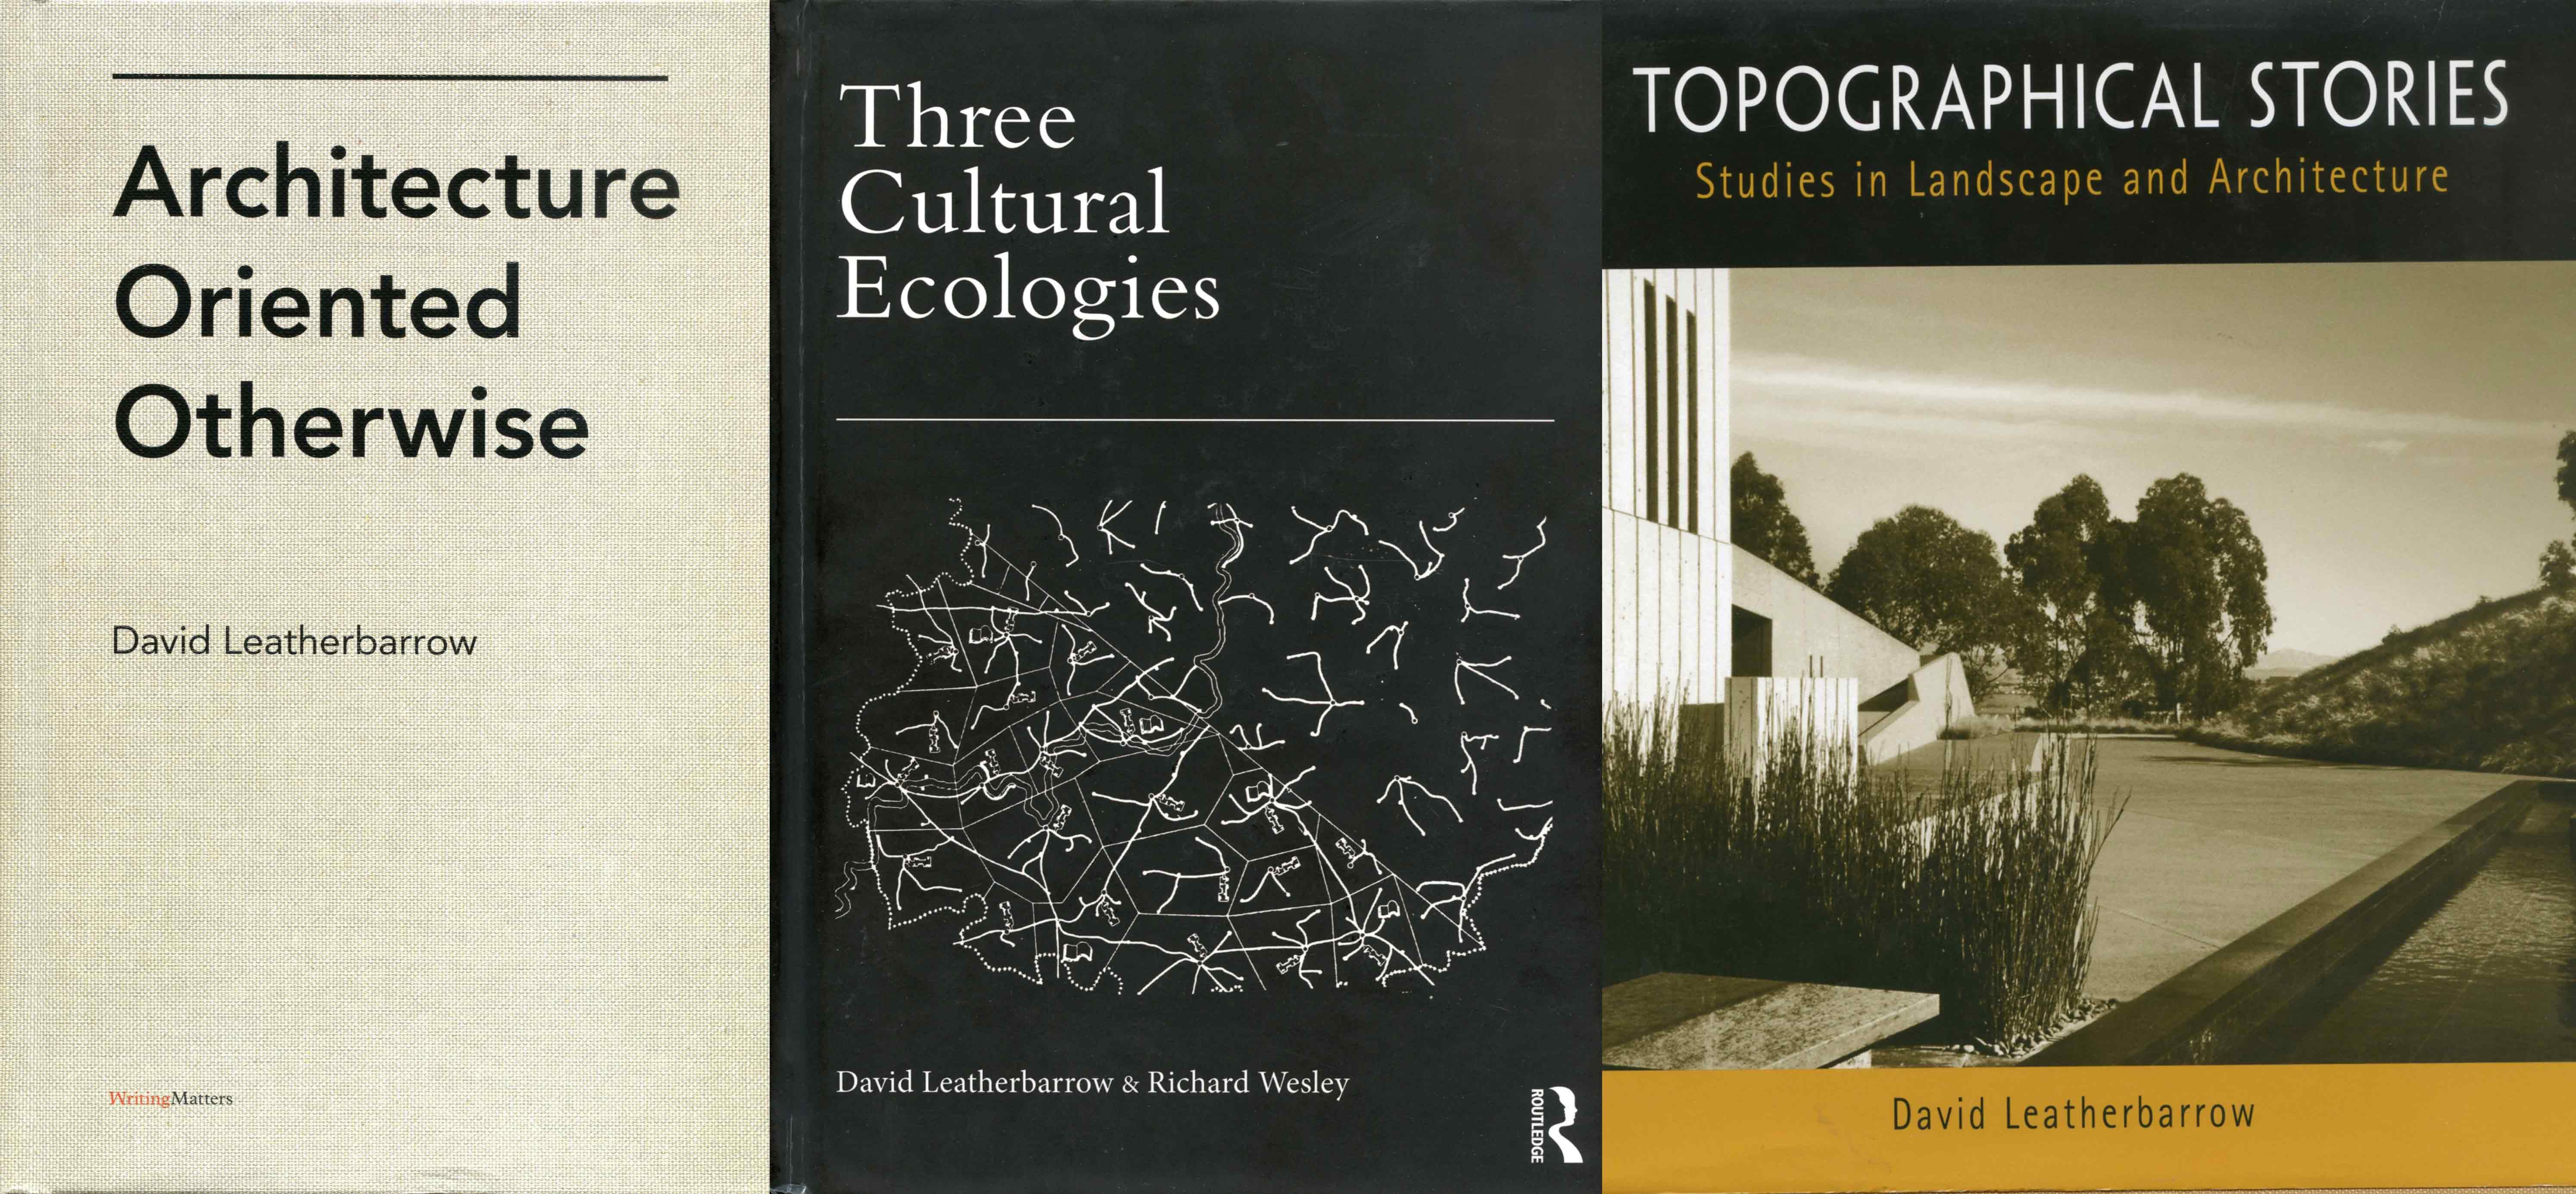 collage of a number of publications by David Leatherbarrow - Architecture oriented otherwise, Three Cultural Ecologies and Topographical Stories